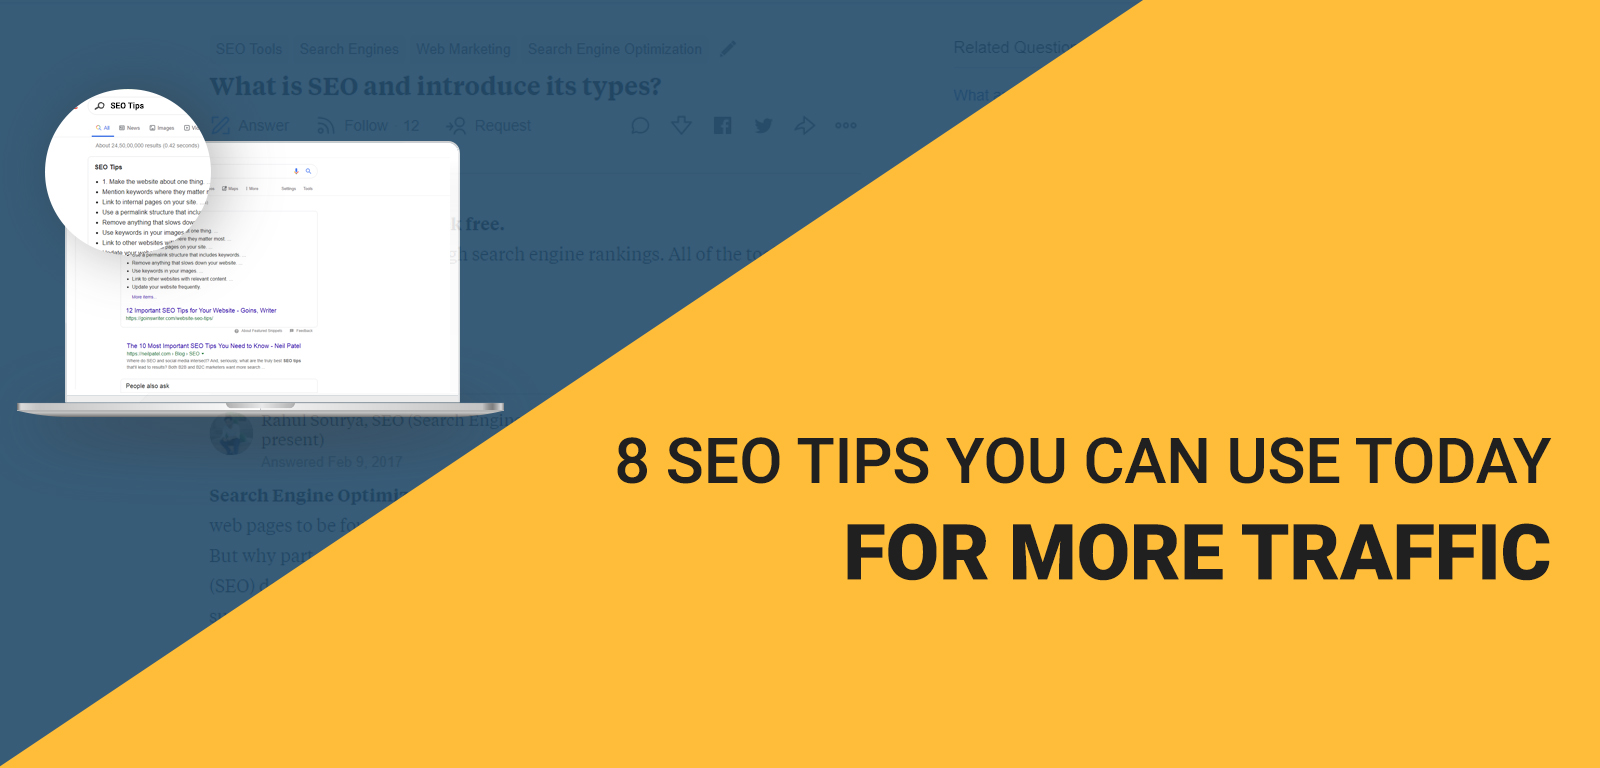 8 SEO tips you can use today for more traffic